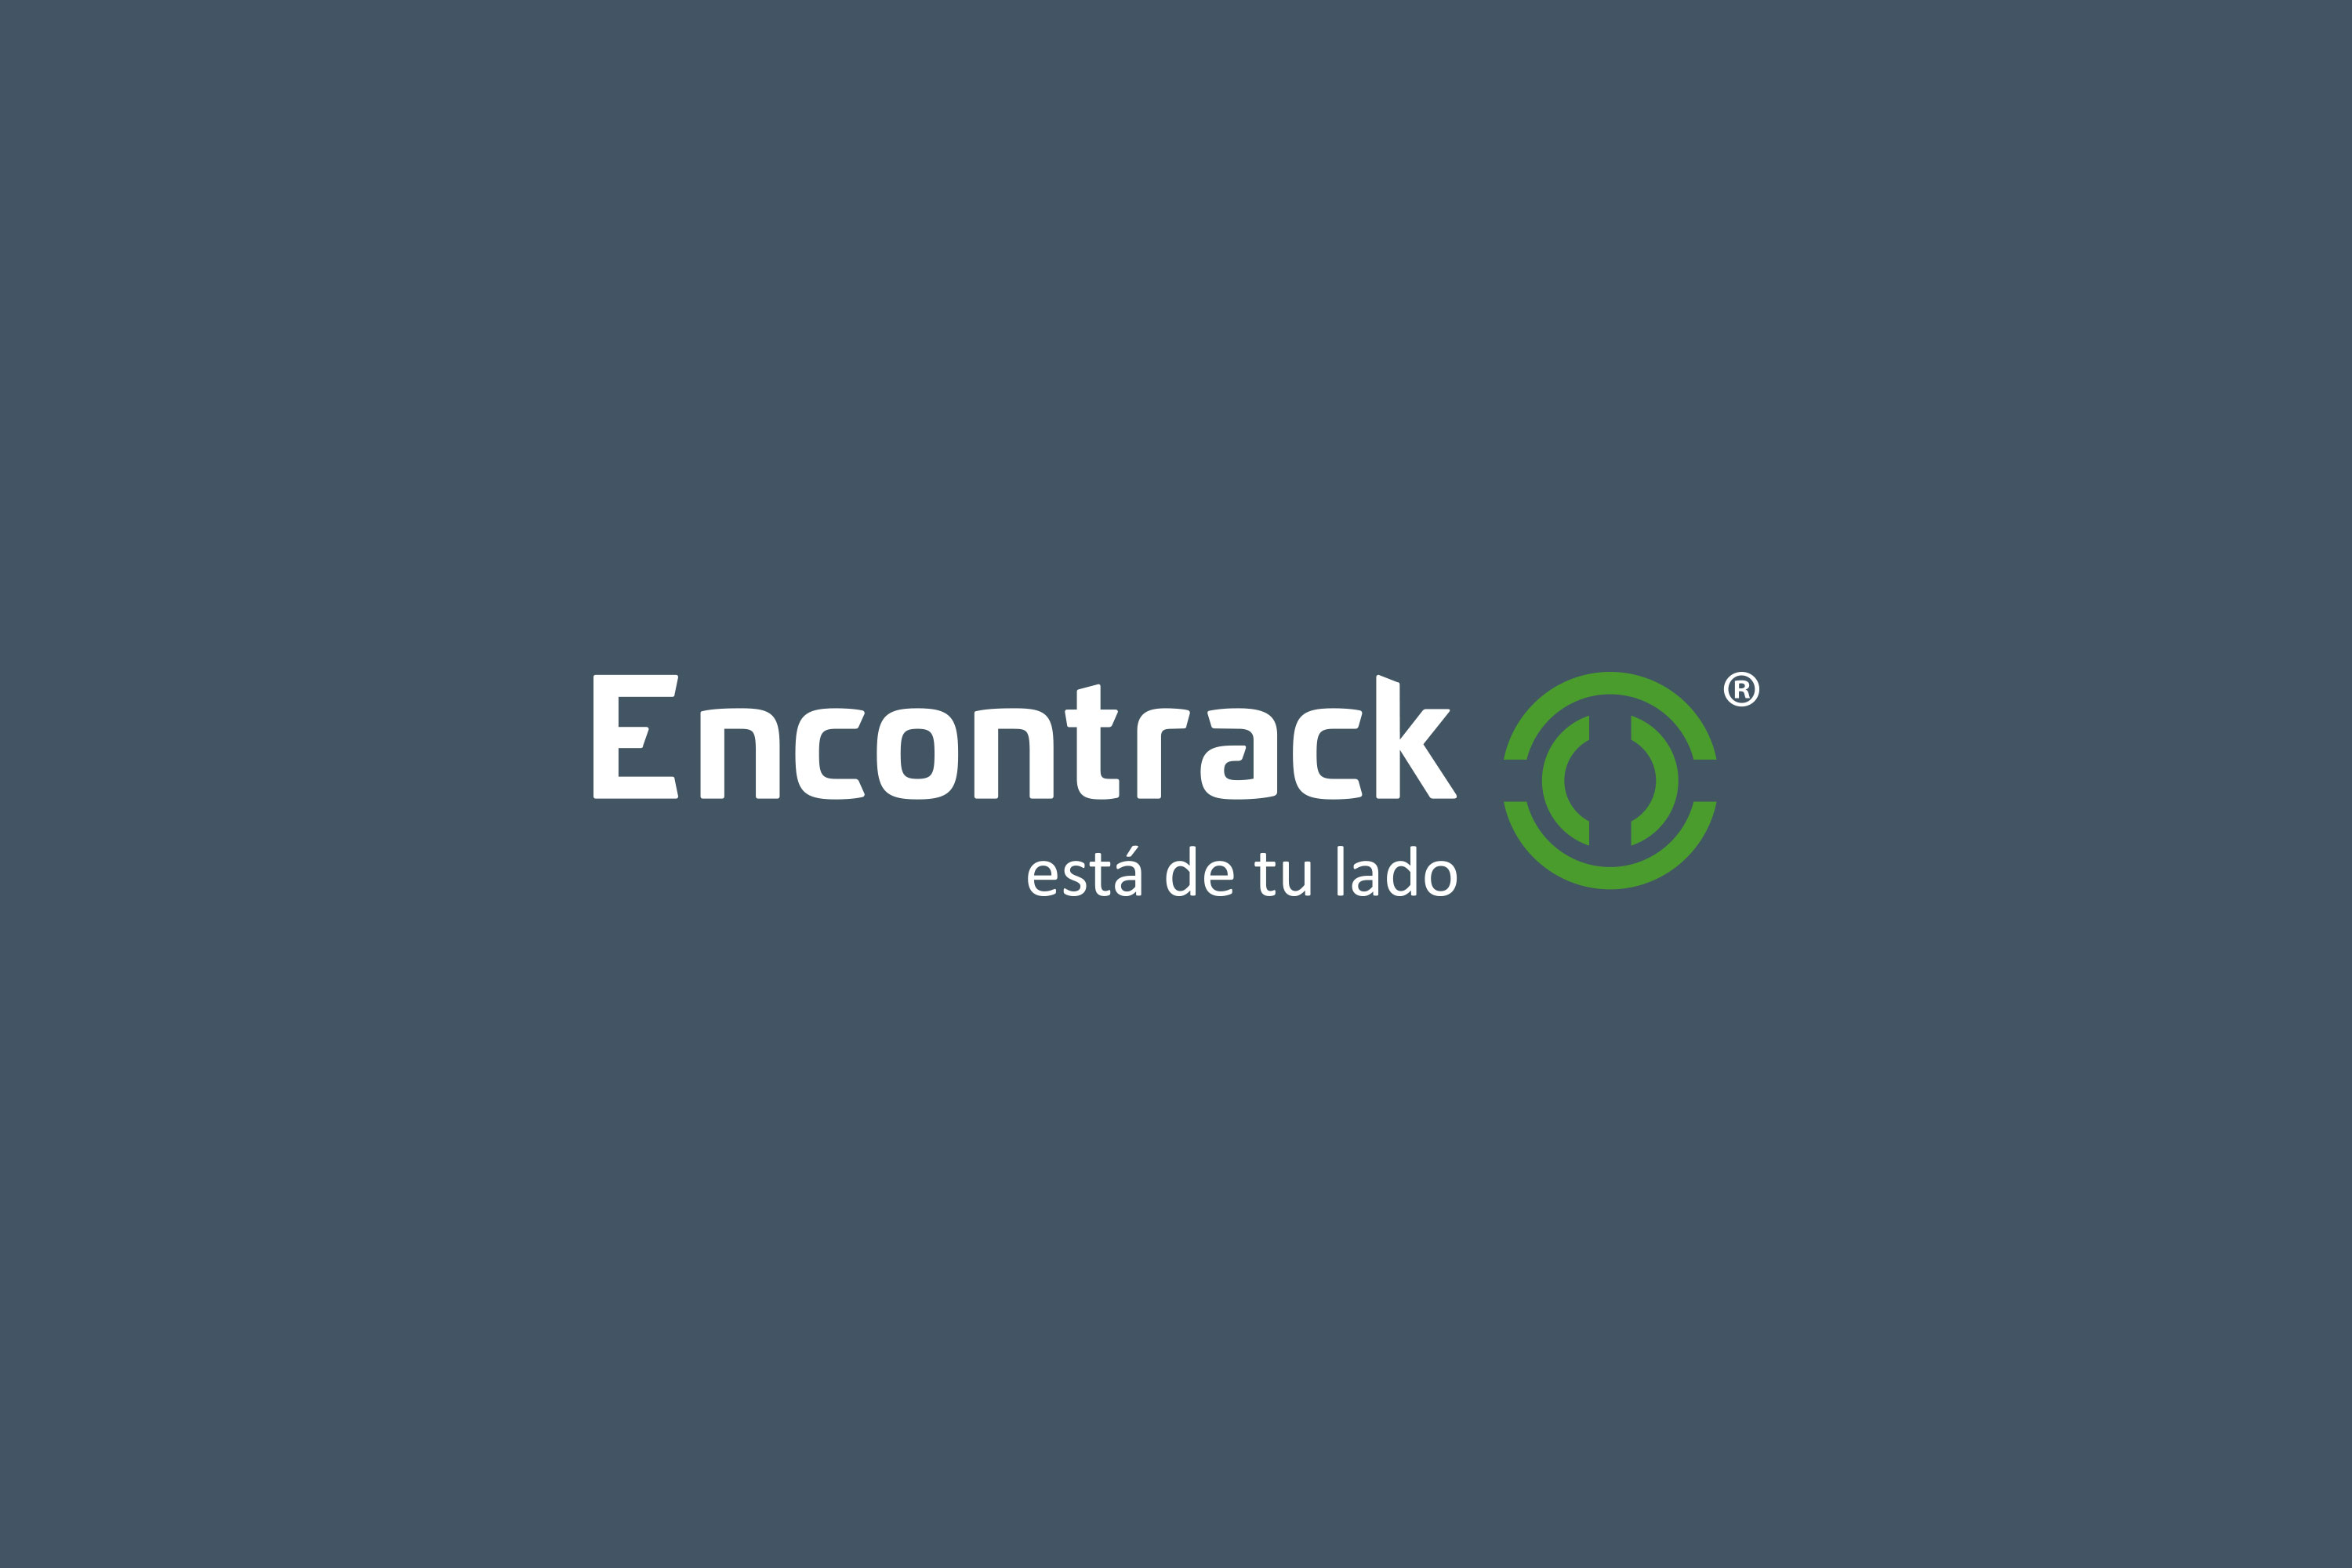 03-logo-encontrack